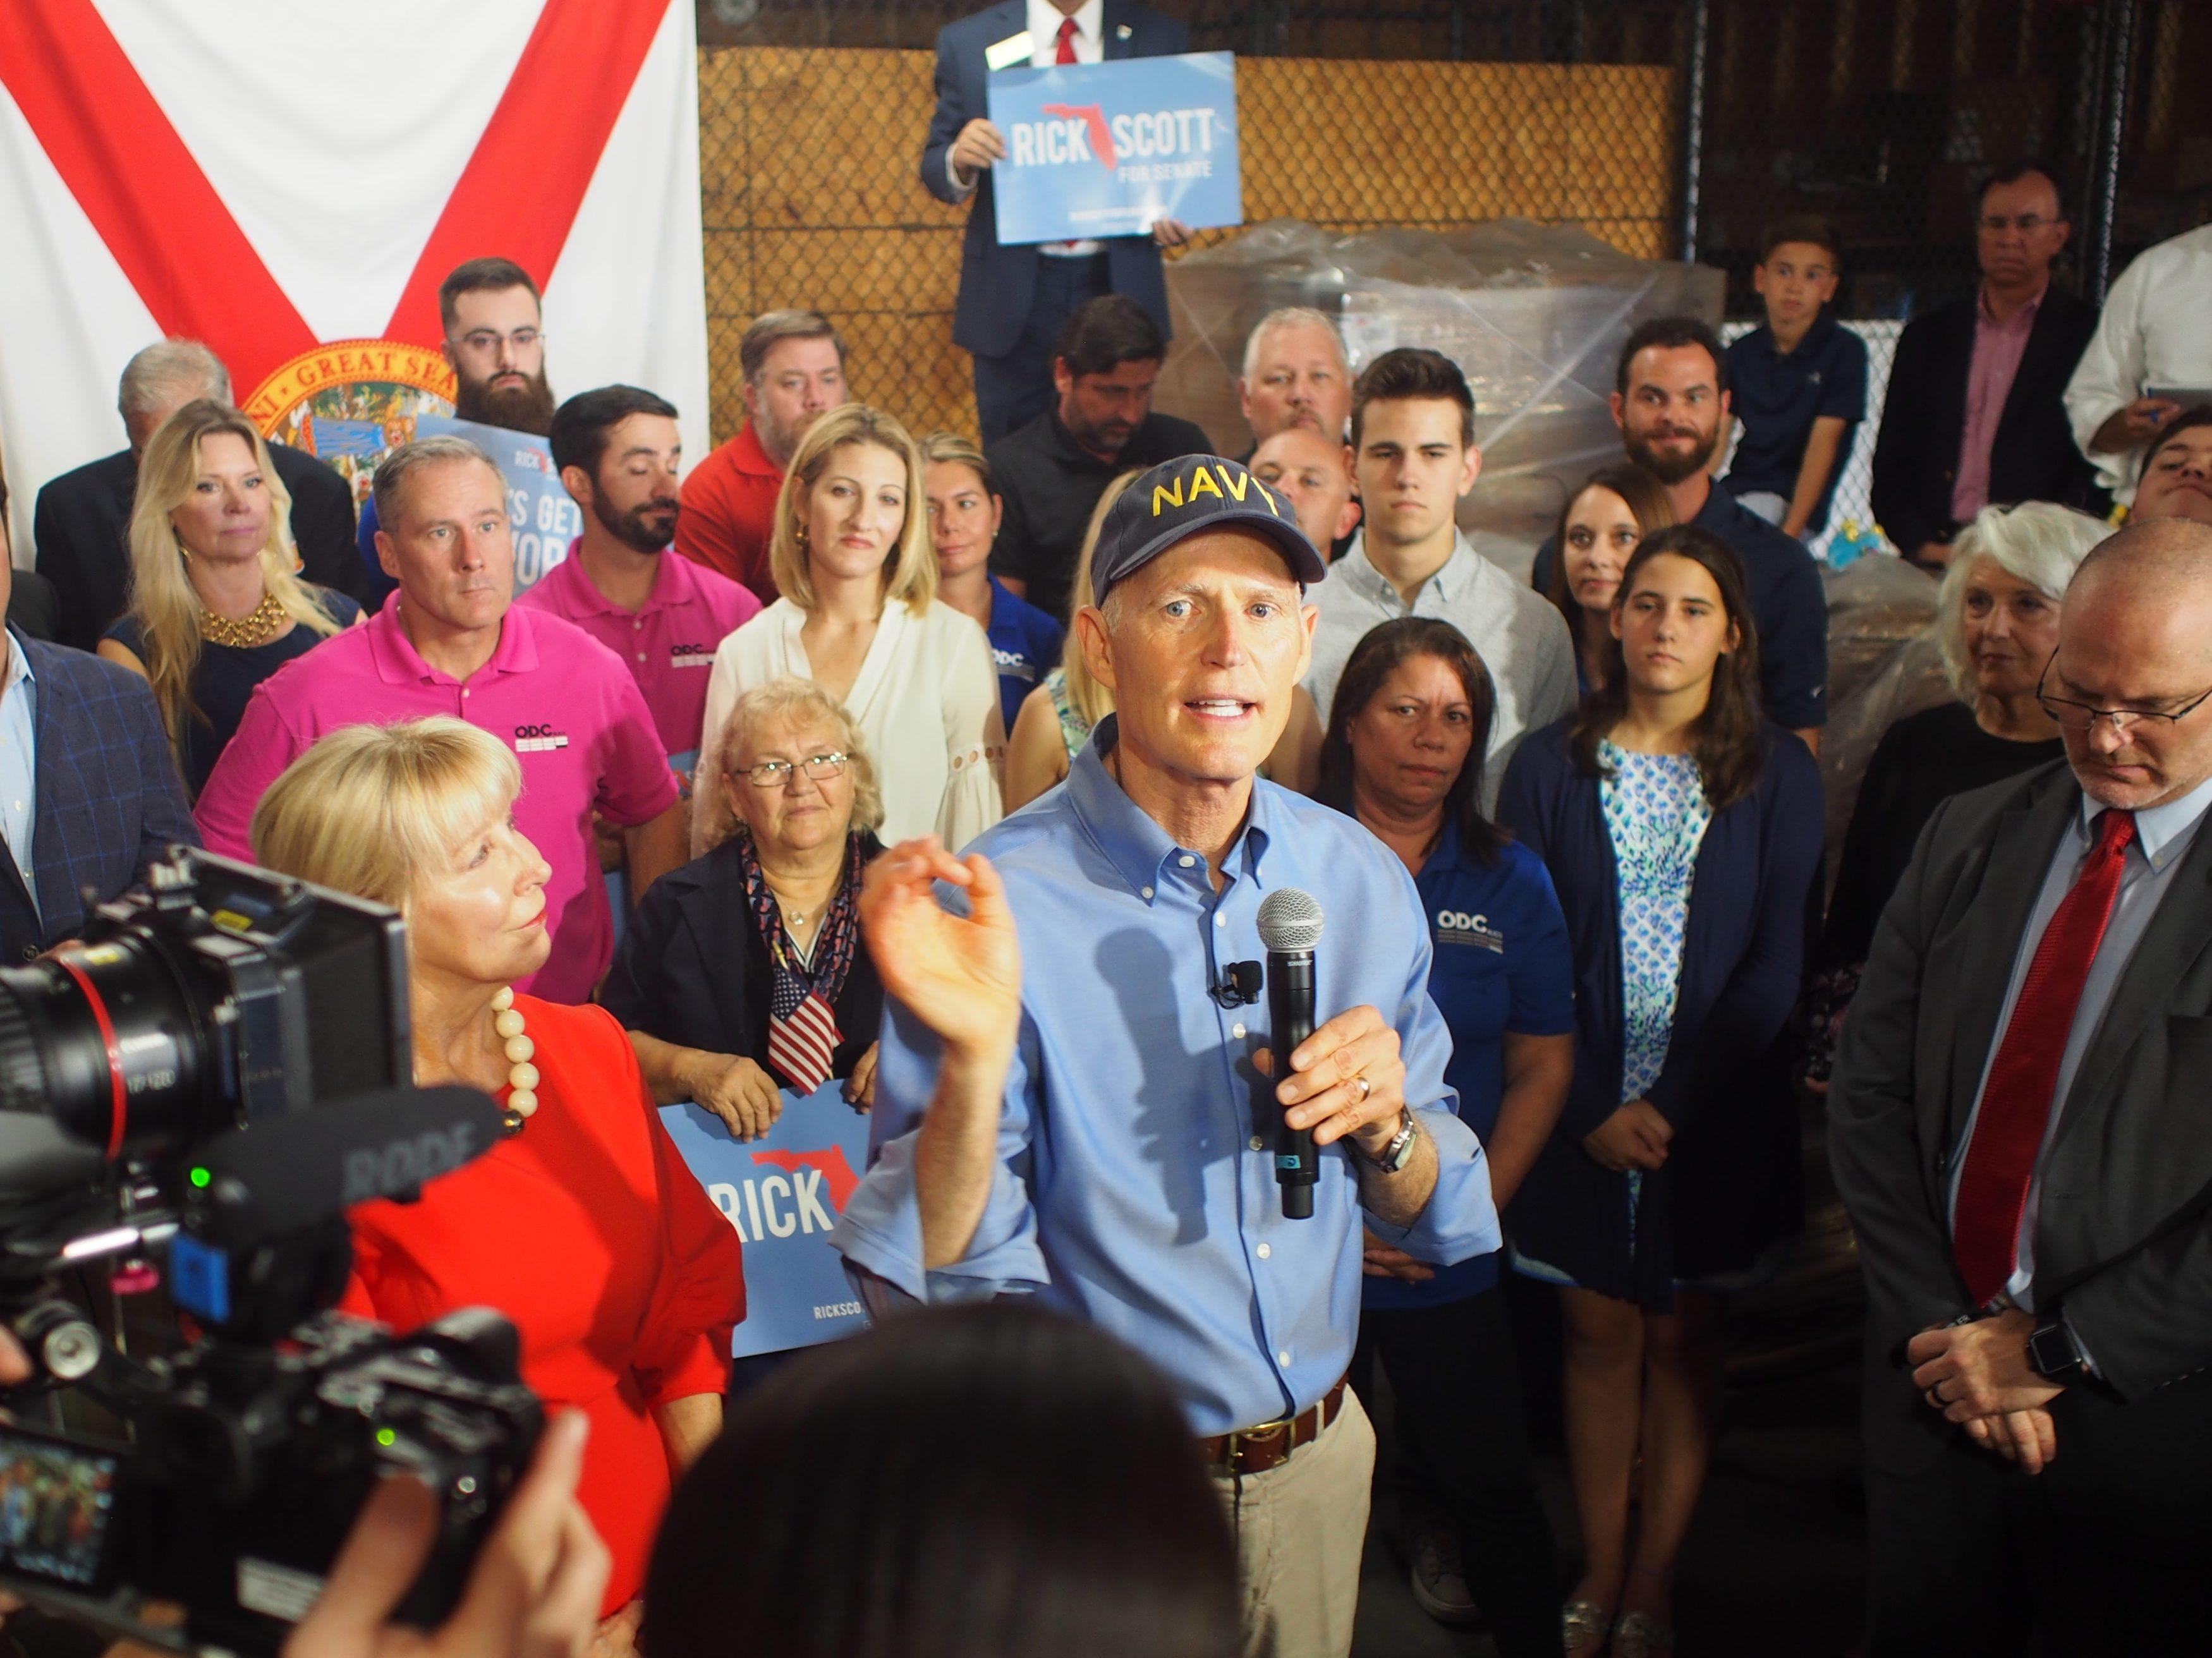 Rick-Scott-announces-040918-3500x2624.jpg